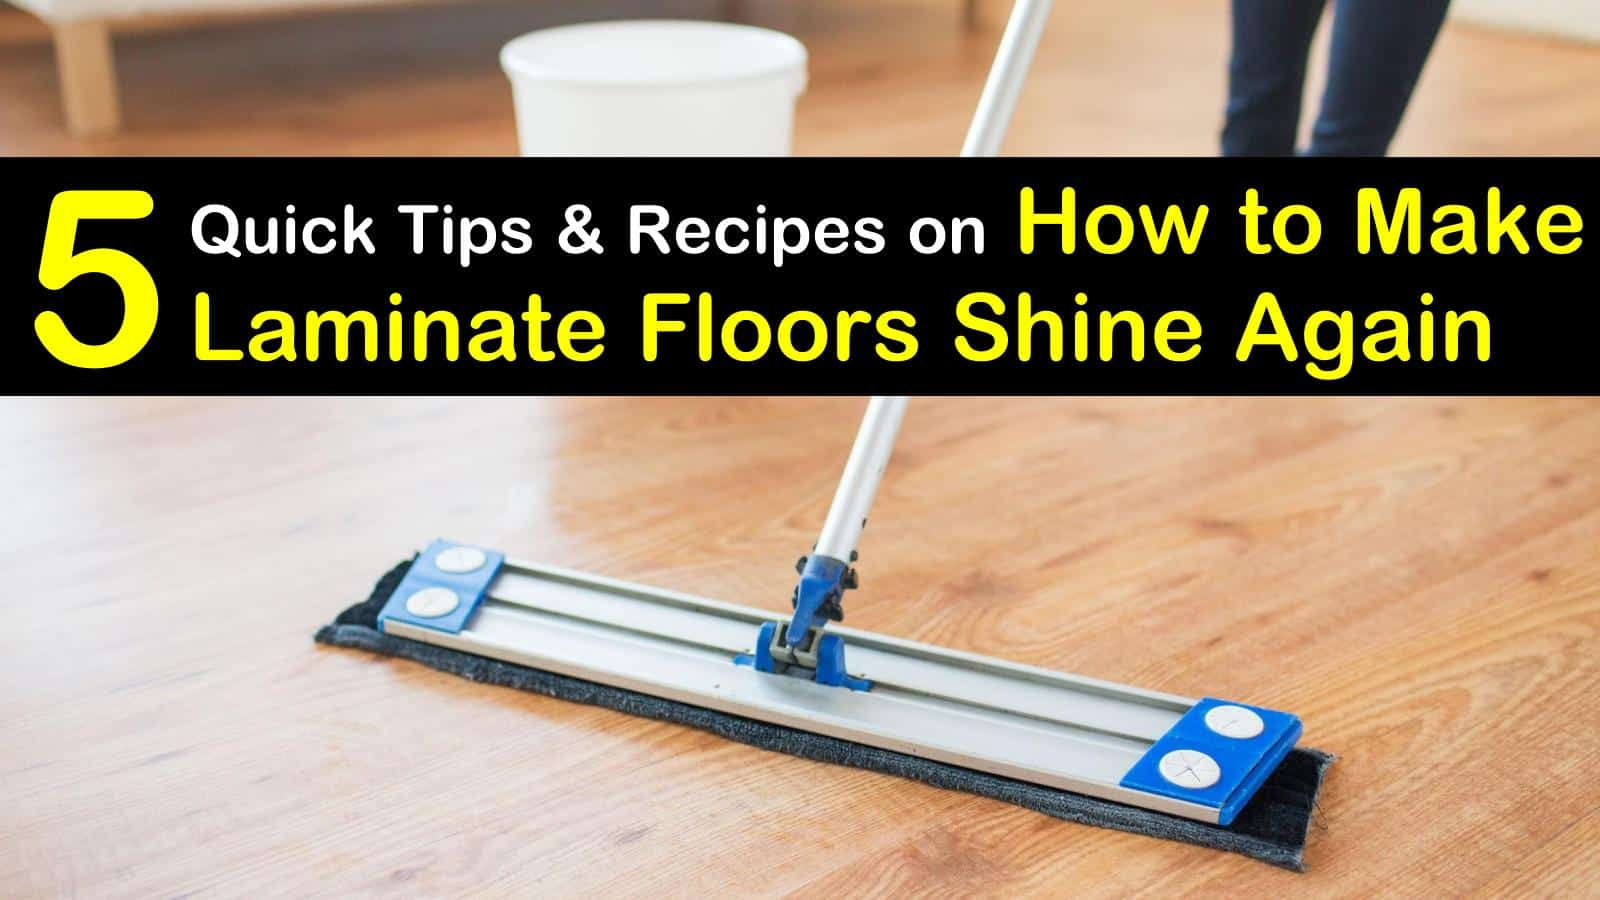 5 Quick Tips And Recipes On How To Make Laminate Floors